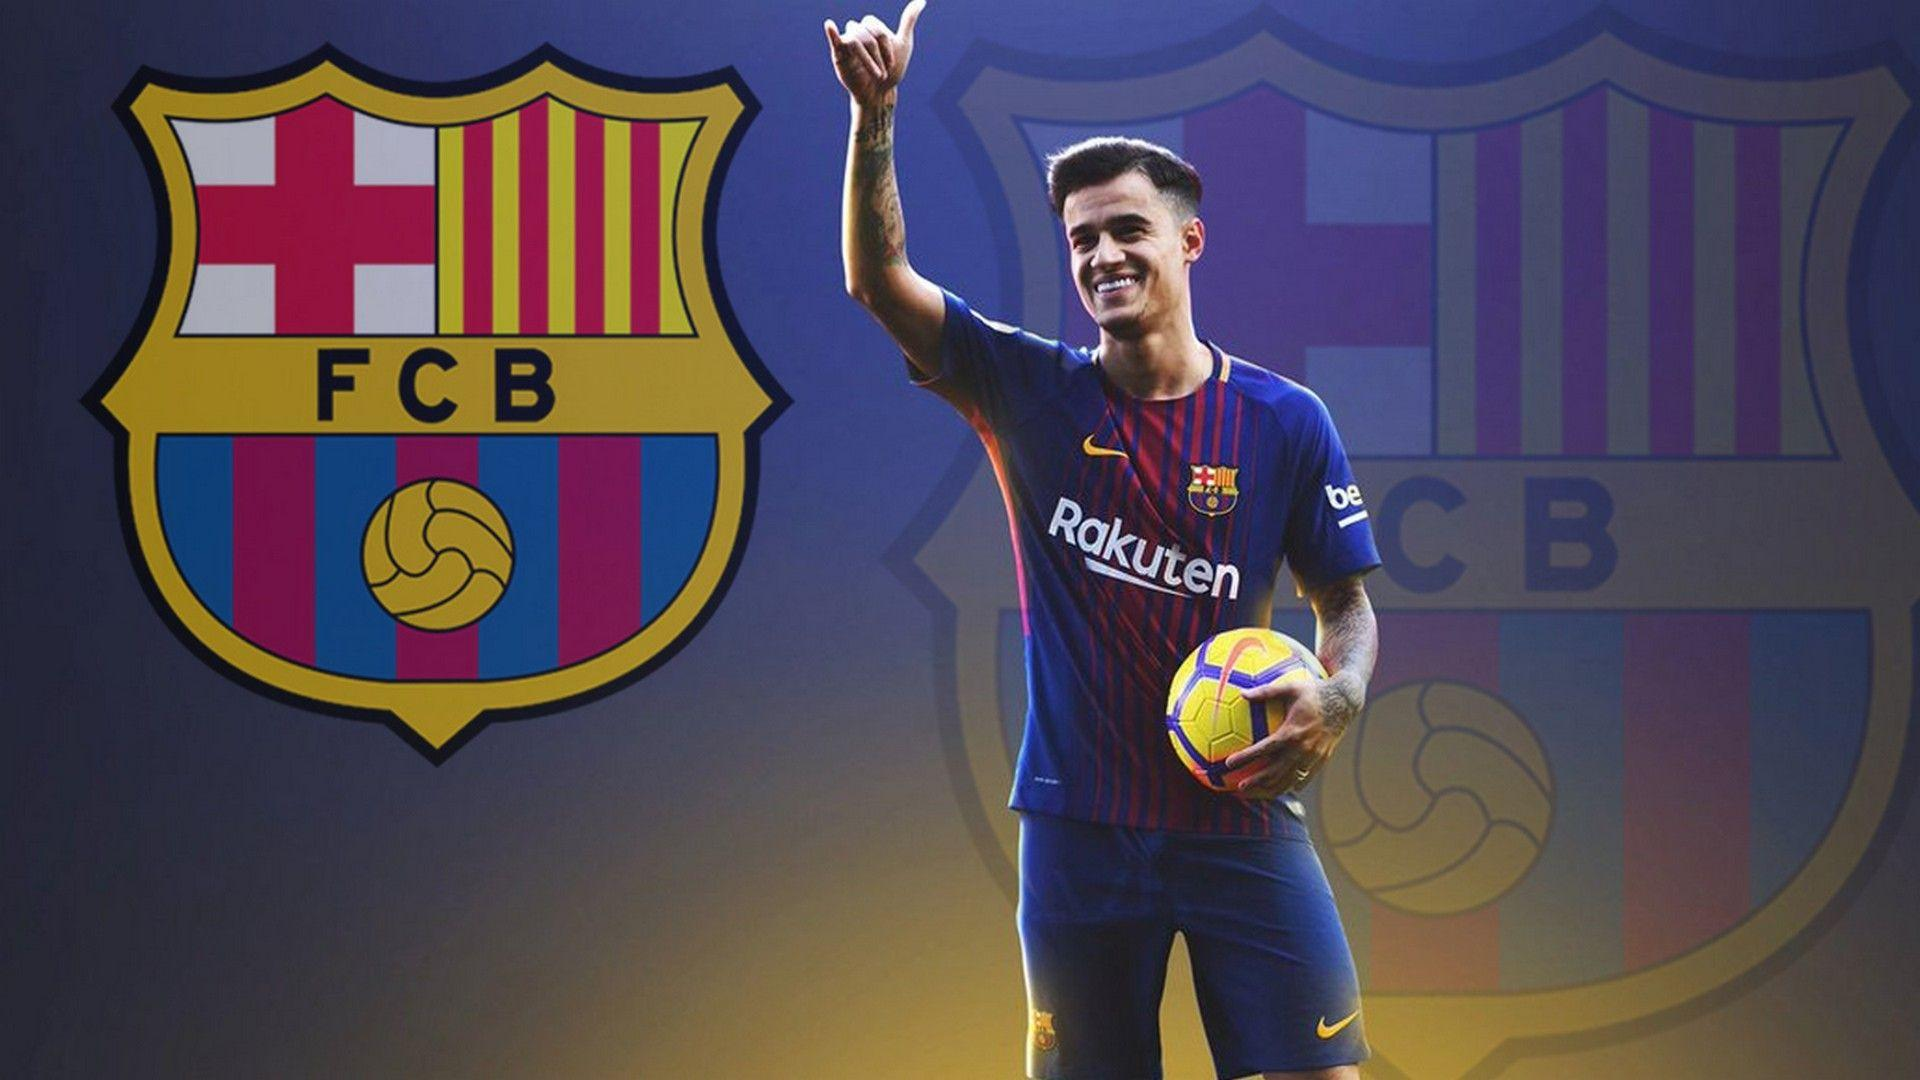 Football Wallpapers 4k 1 0 7 Apk: Coutinho Barcelona Wallpapers